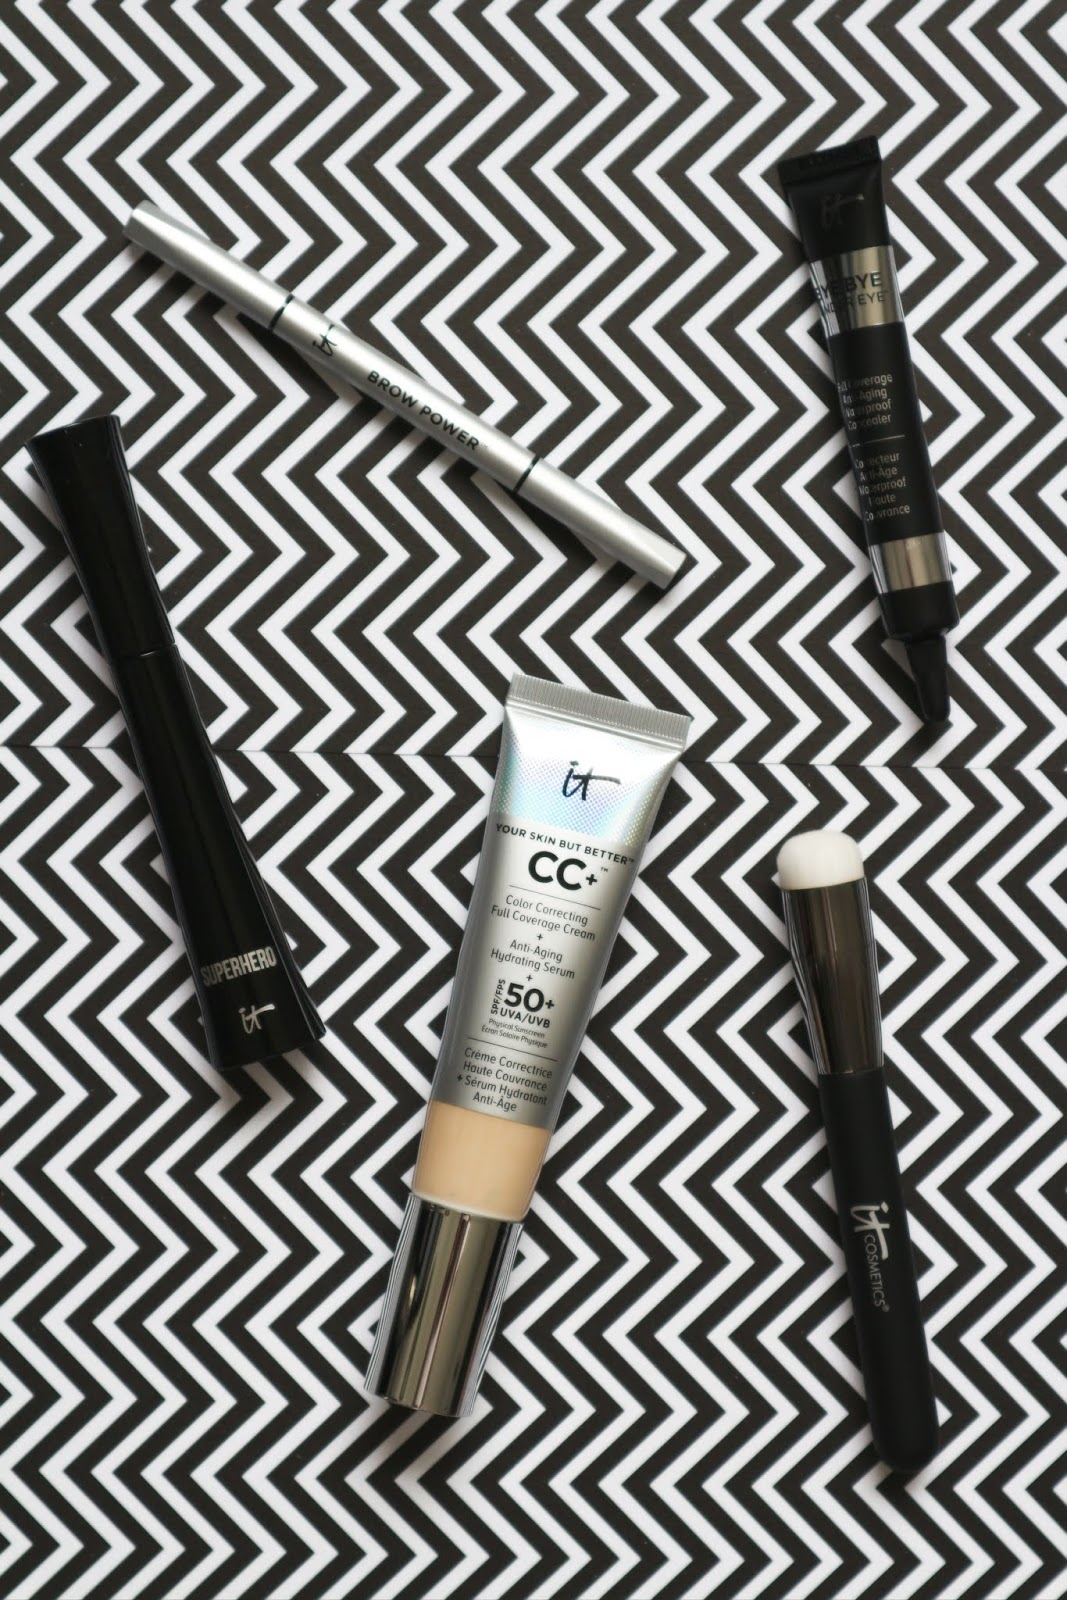 must have it cosmetics products